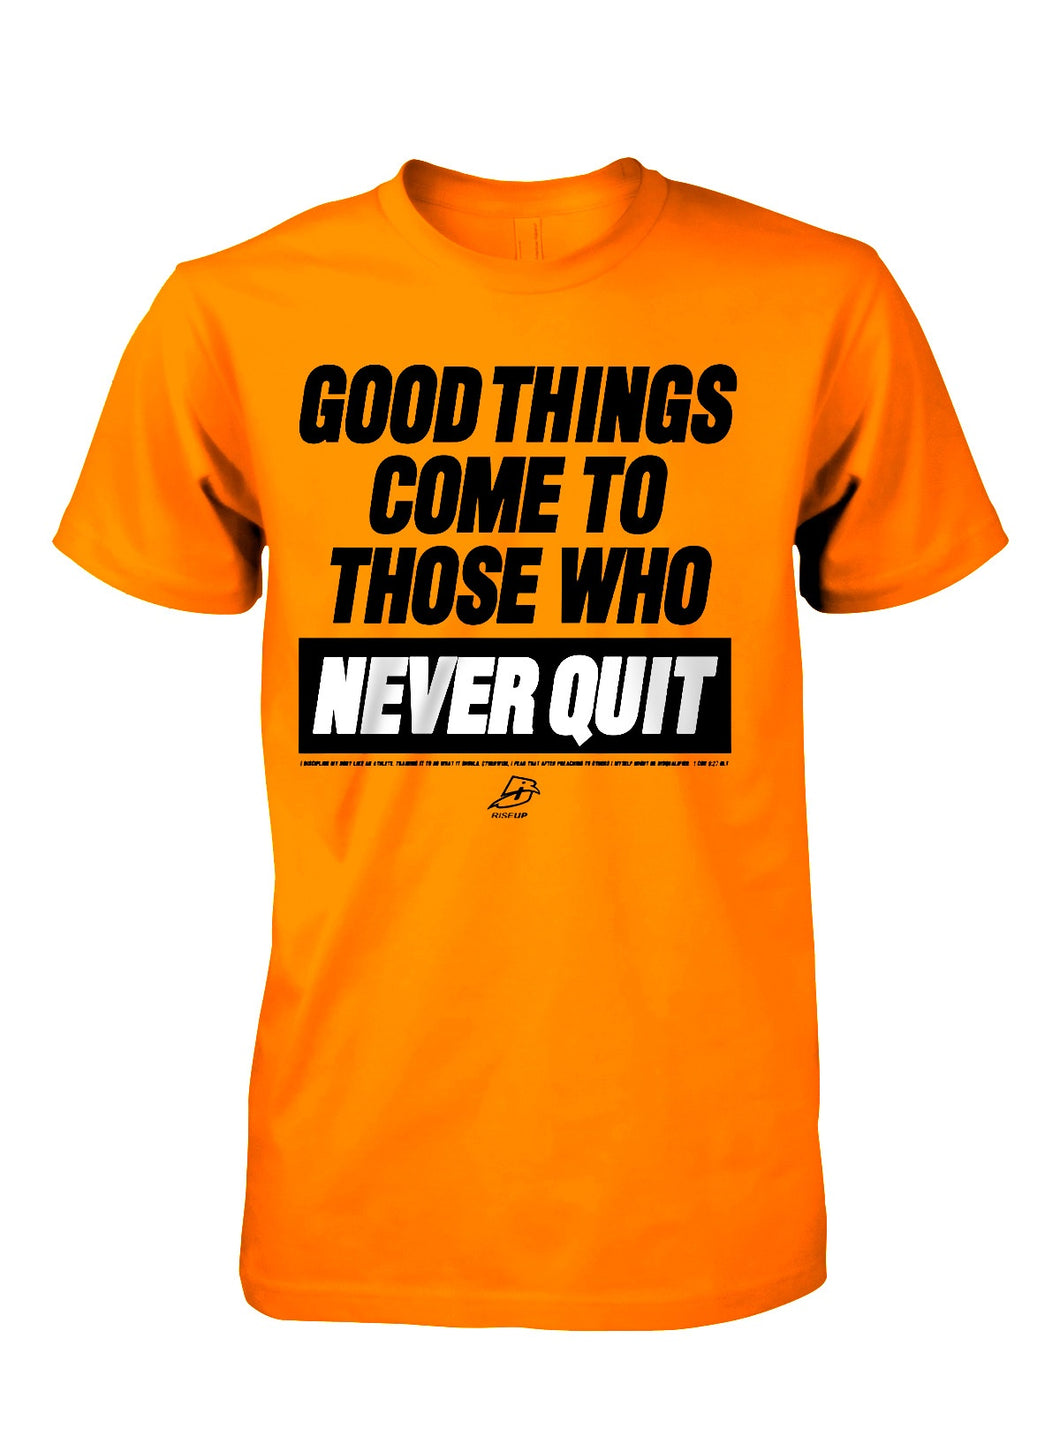 T-Shirt Good Things Comes To Those Who Never Quit (Dry-Fit)